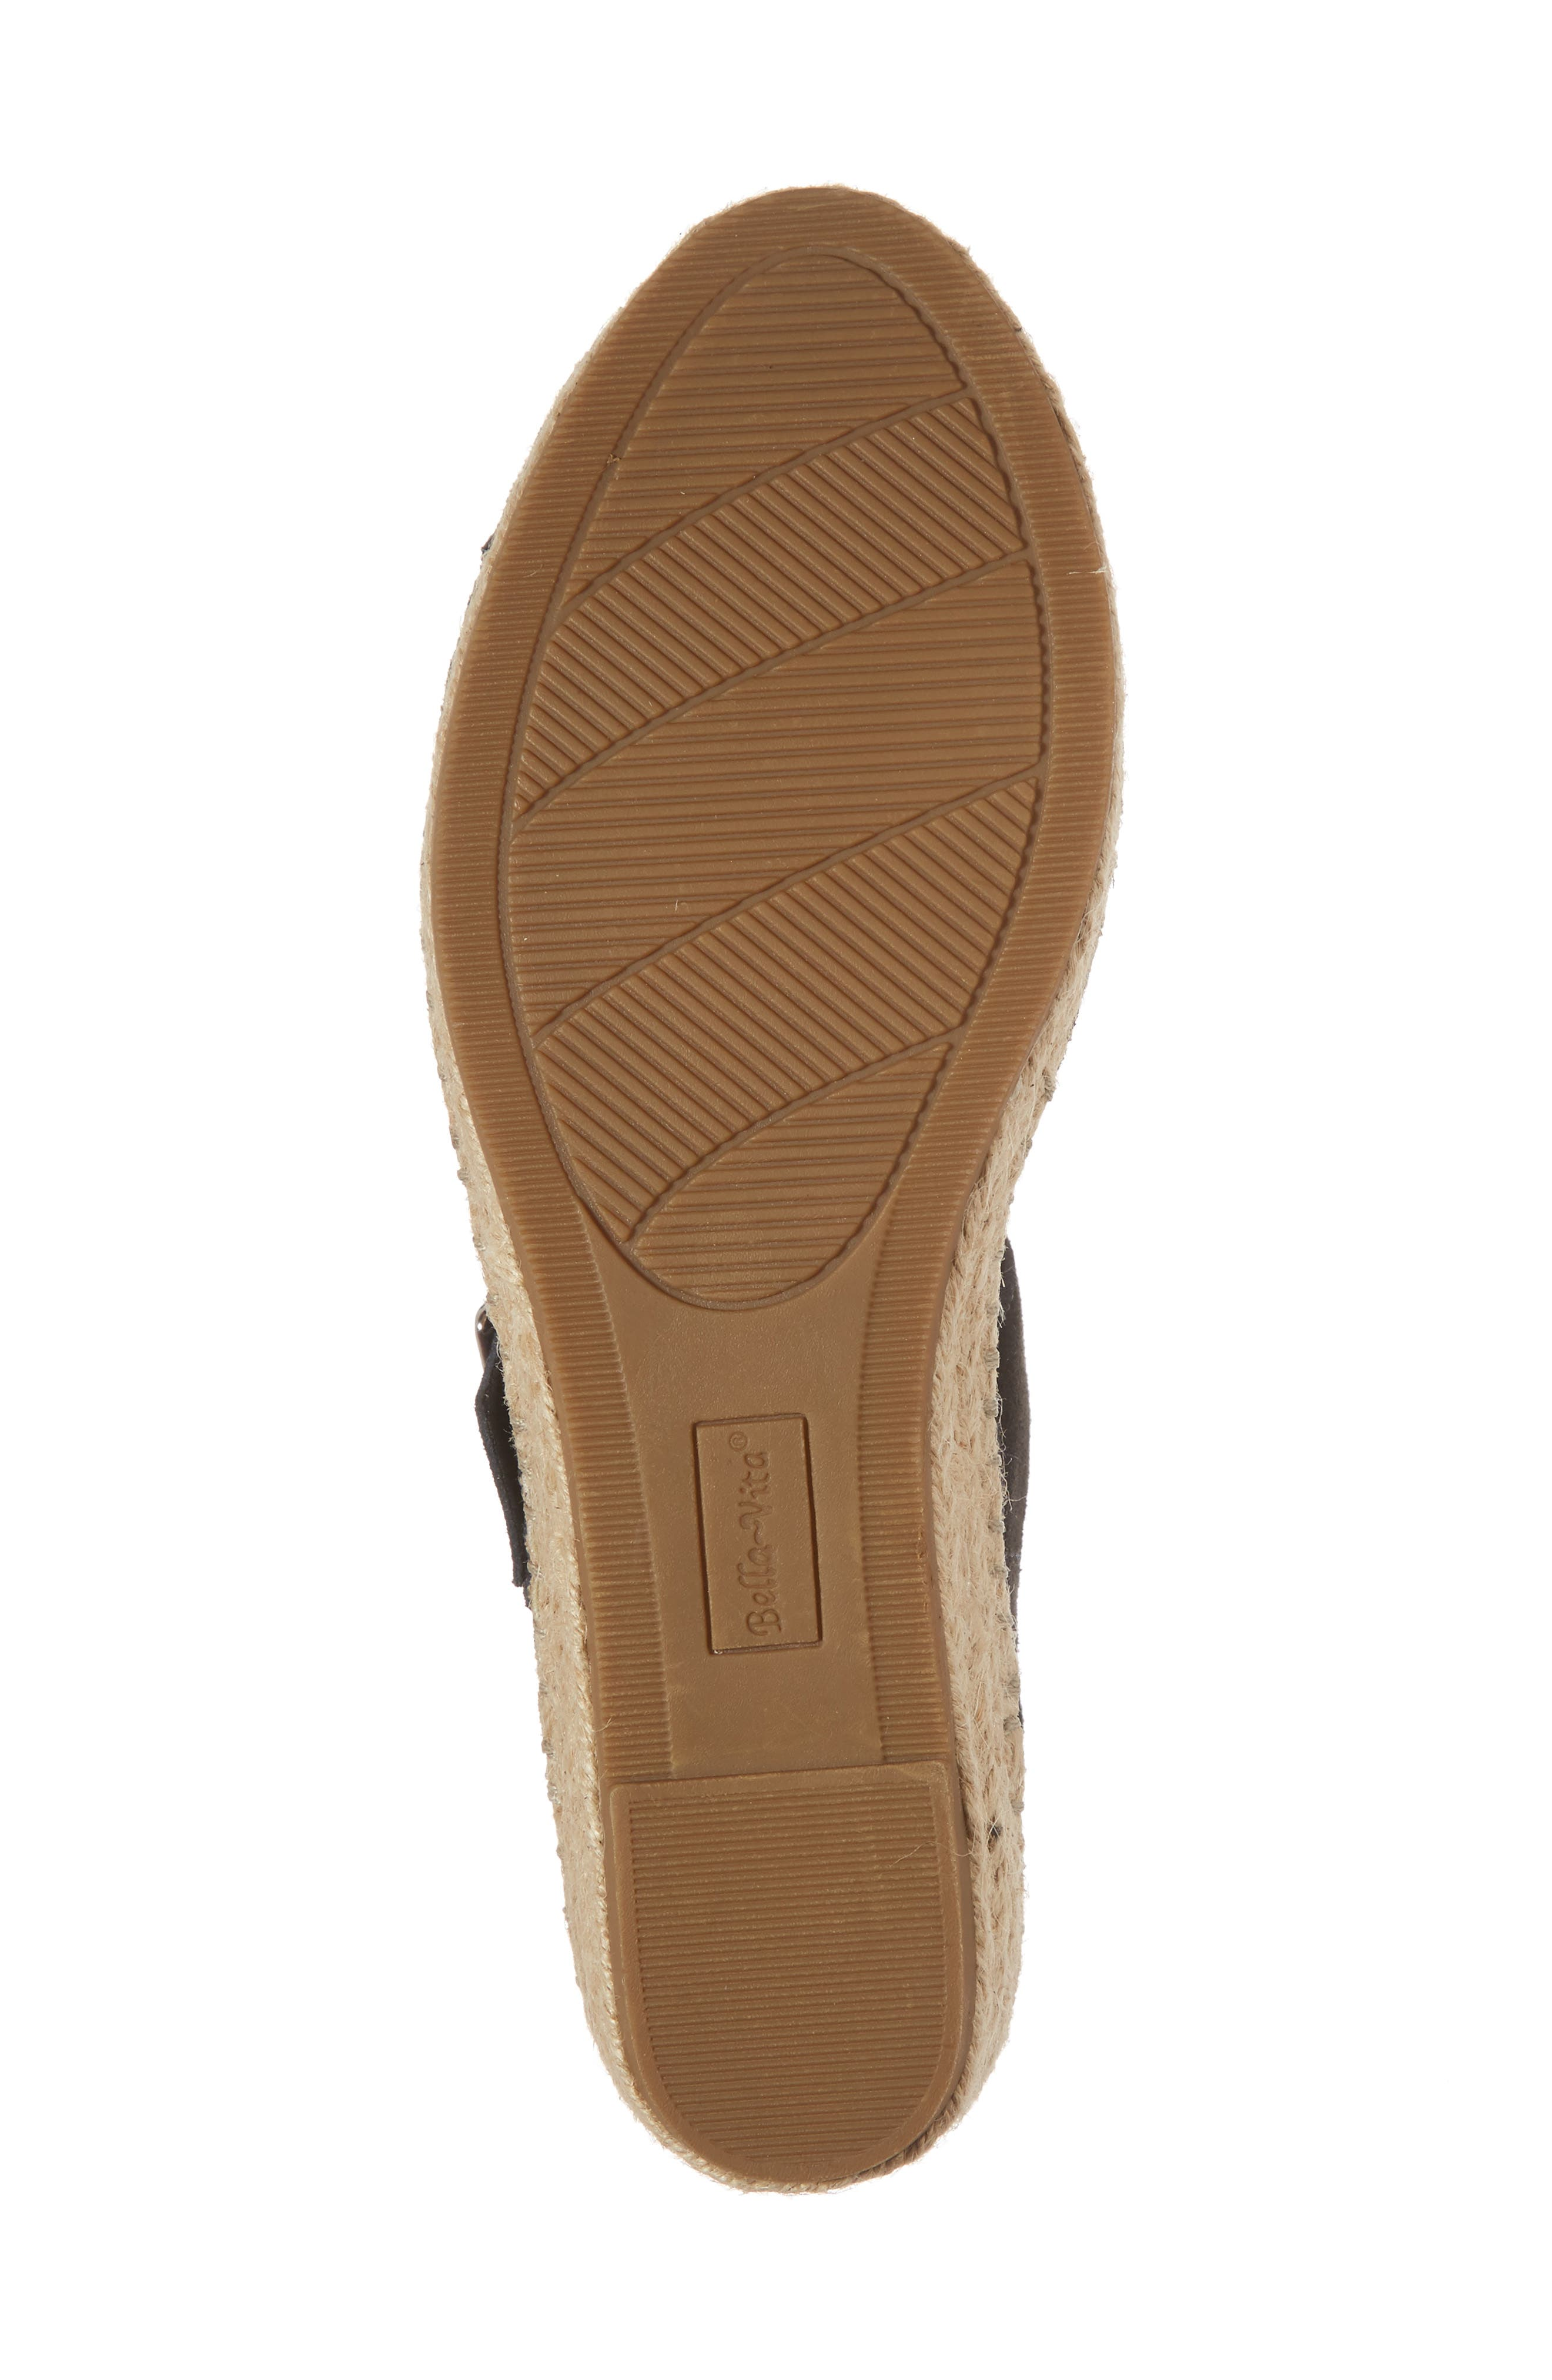 BELLA VITA,                             Caralynn Espadrille Sandal,                             Alternate thumbnail 6, color,                             018